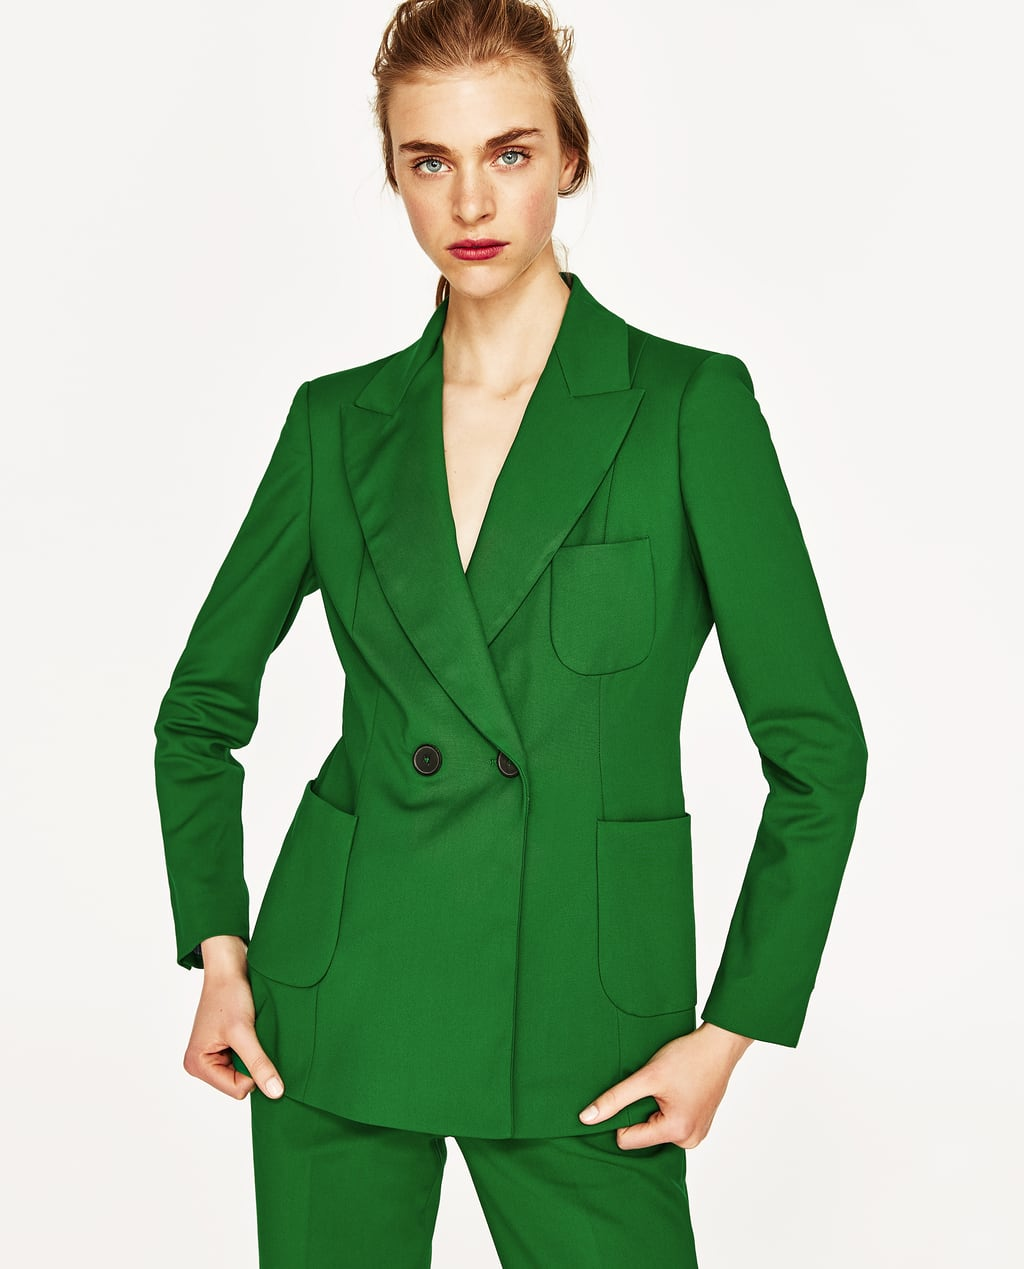 DOUBLE BREASTED JACKET - BLAZERS-WOMAN-SALE | ZARA United States